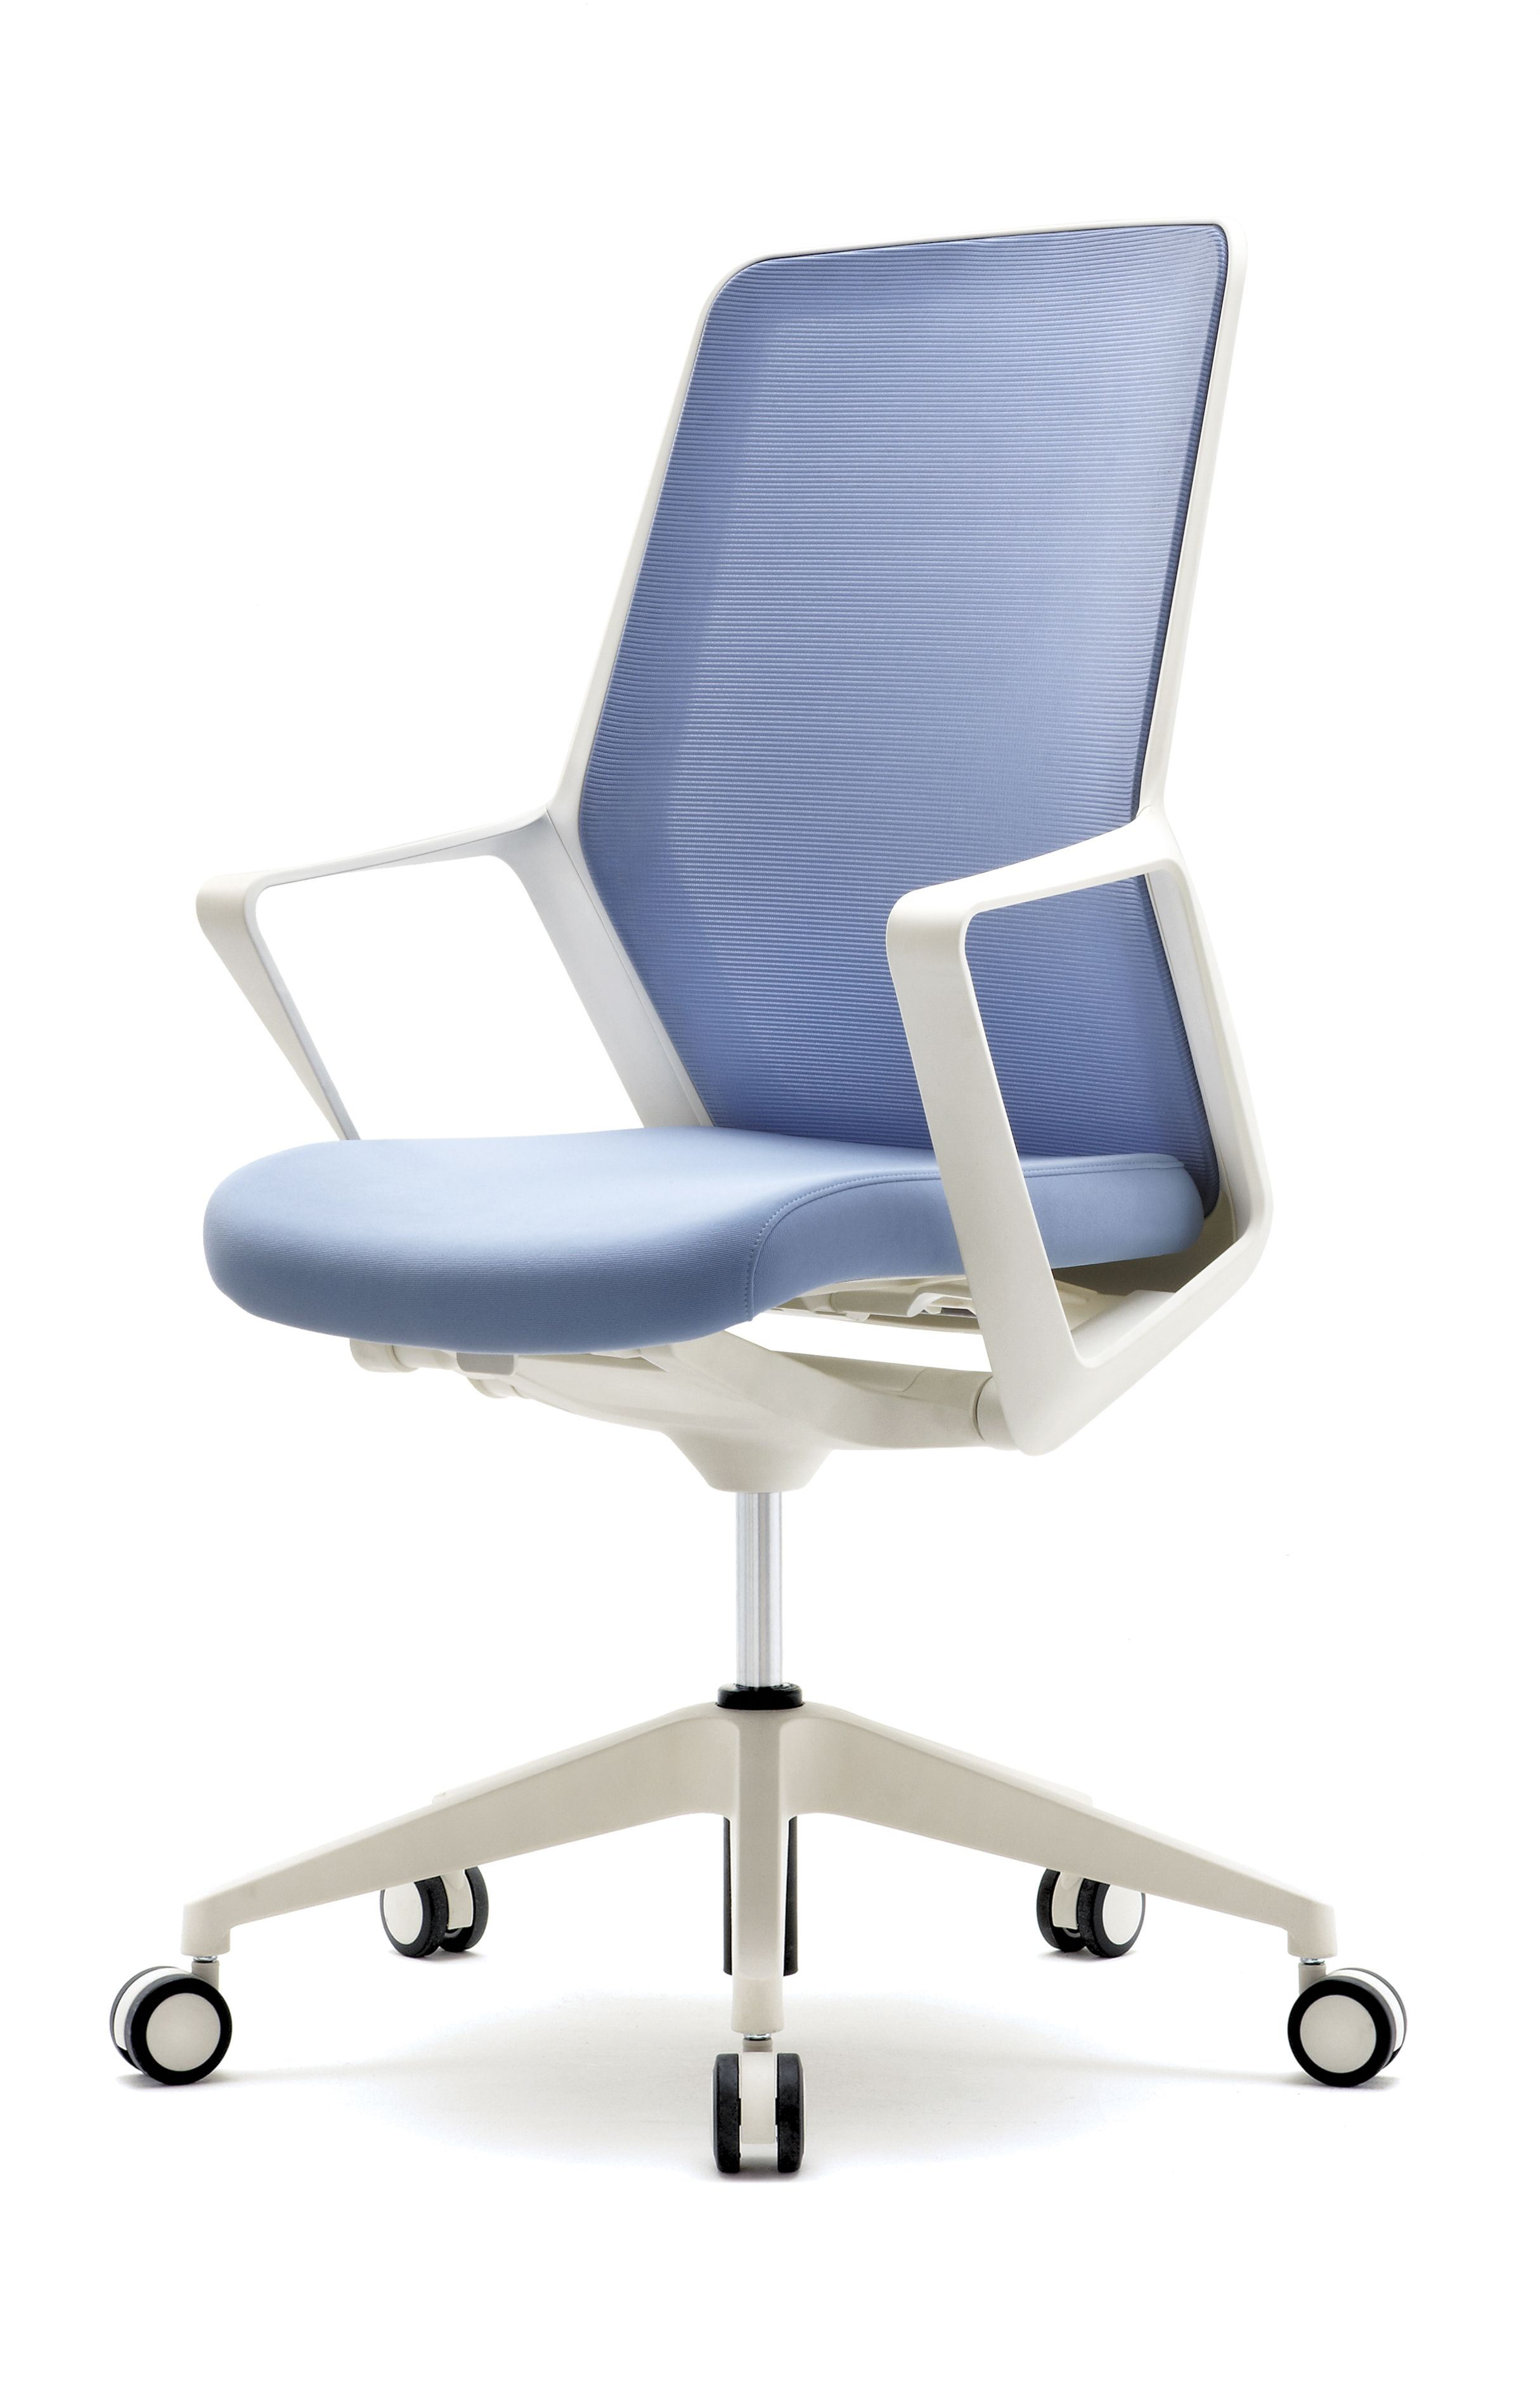 Synchronized Armchair With Work Position Lock Tilt White Plastics 3 Available Color Combinations Orange Light Blue Office Furnishing Office Chair Furniture